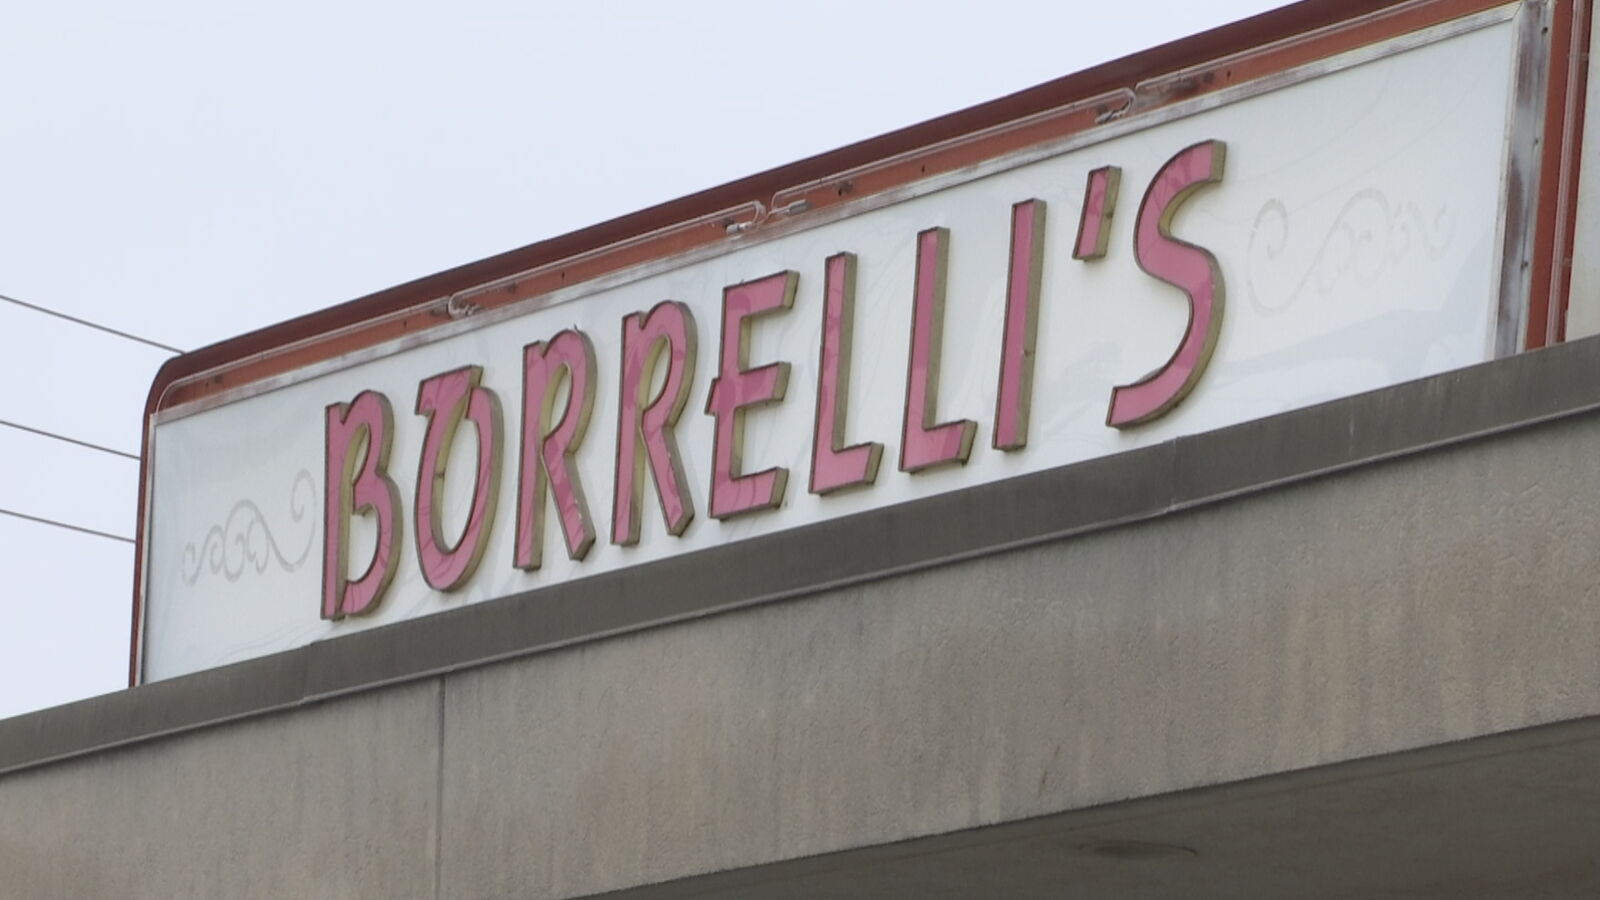 Borrelli's Pastry Shop in Coventry. (WJAR)<p></p>